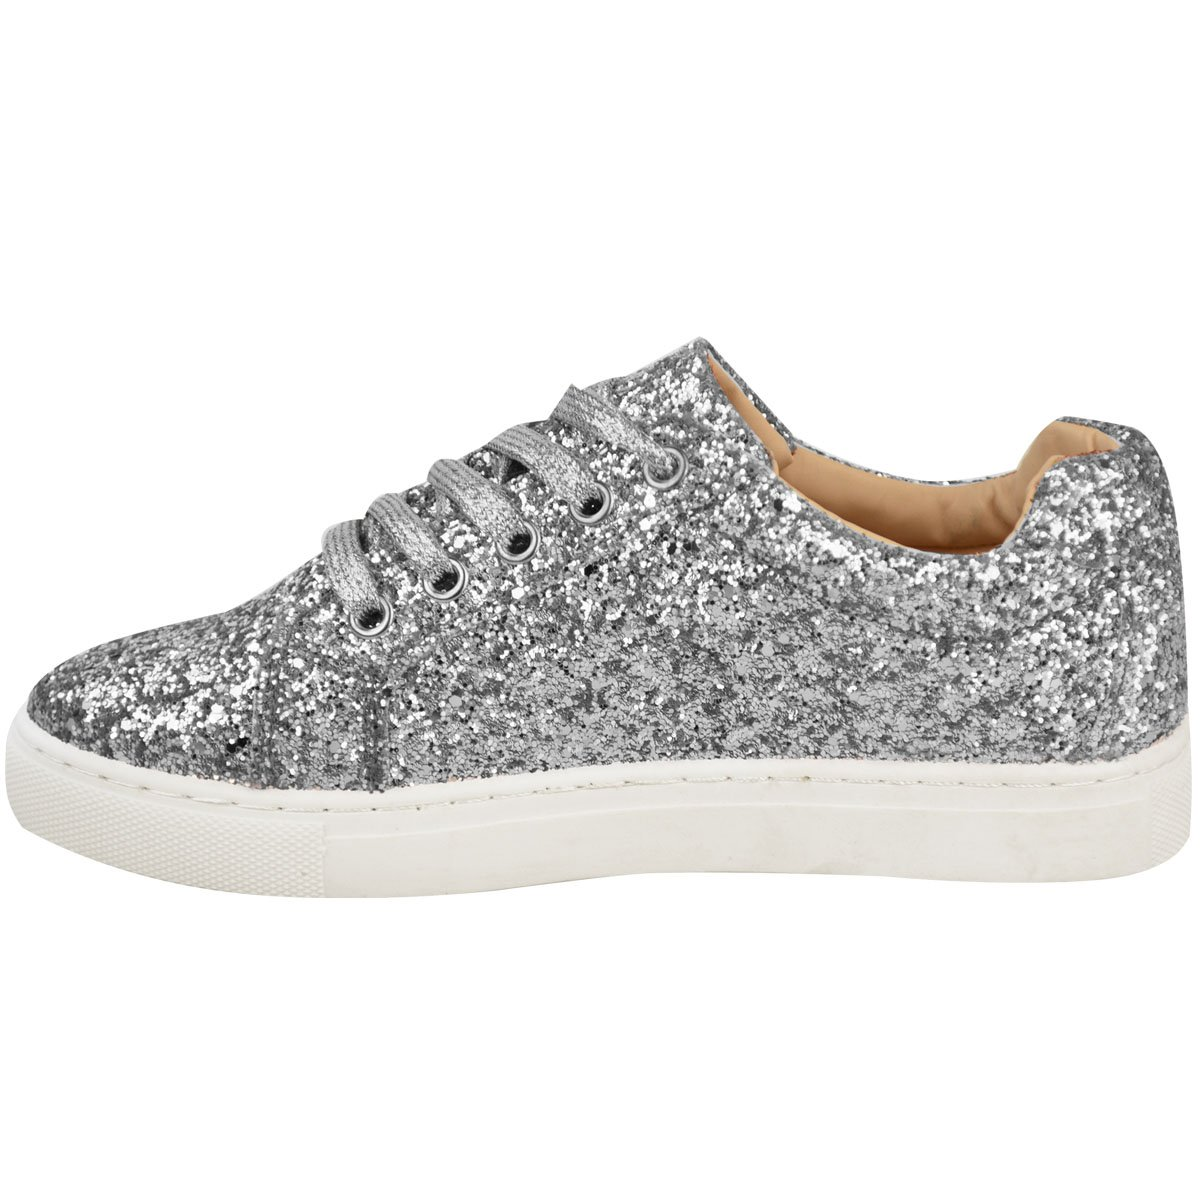 Ladies Pink White Sole Lace Up Glitter Sports Style Trainers Gym Shoes Size UK 5